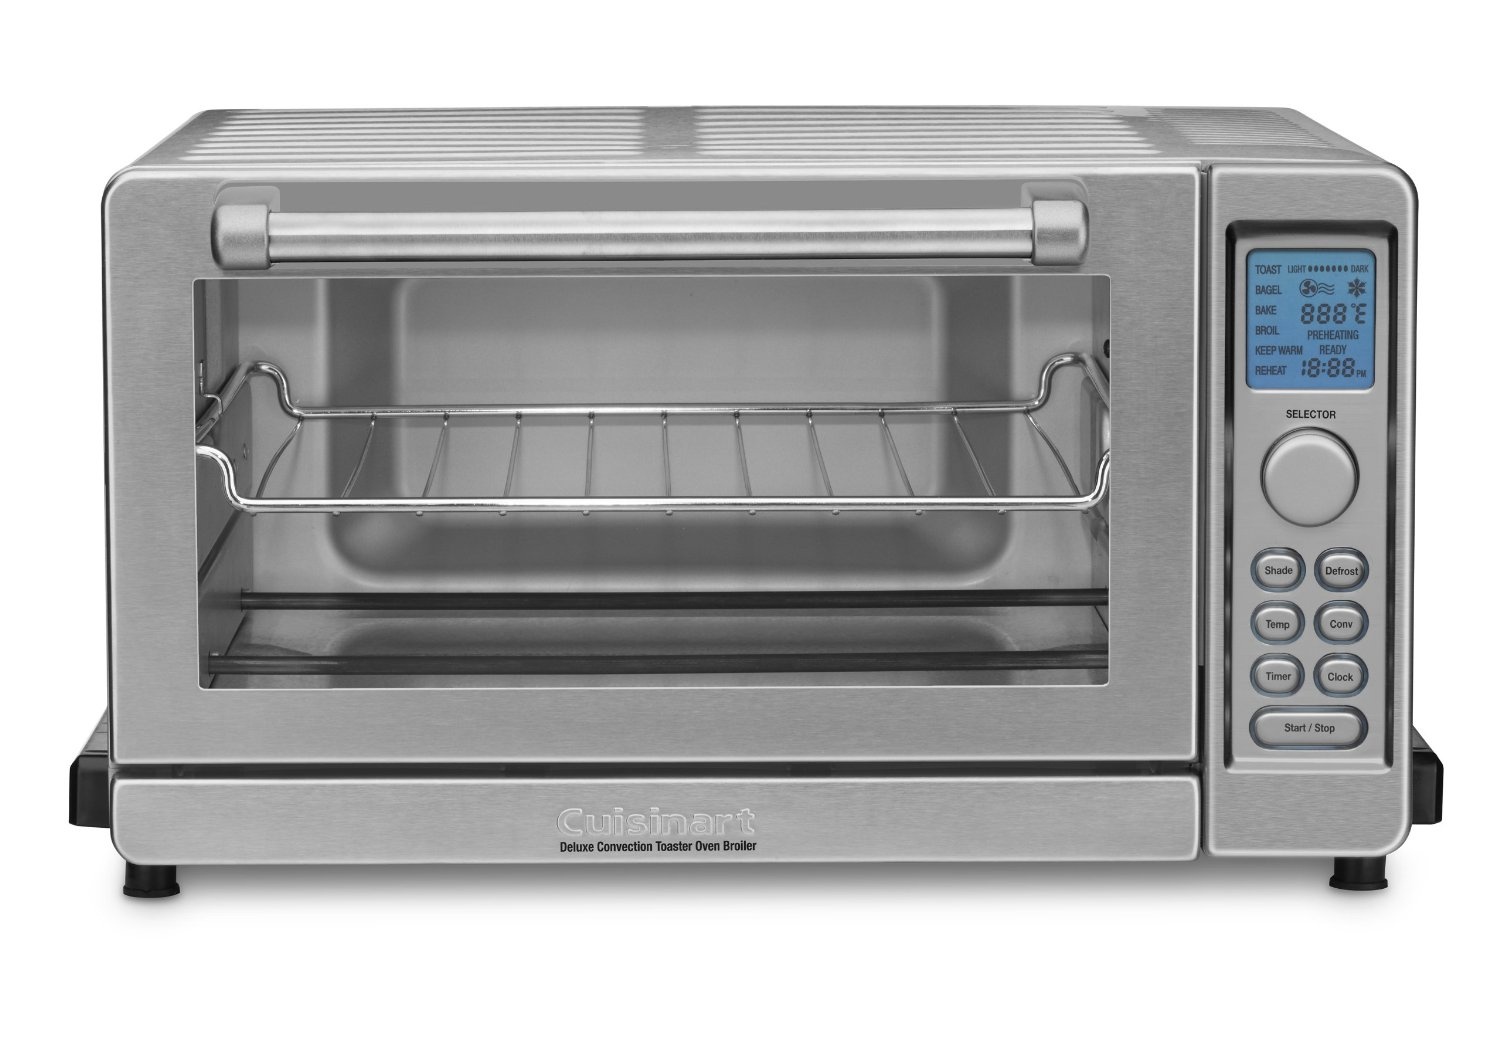 Top 10 Countertop Convection Oven Reviews The Best Of 2019